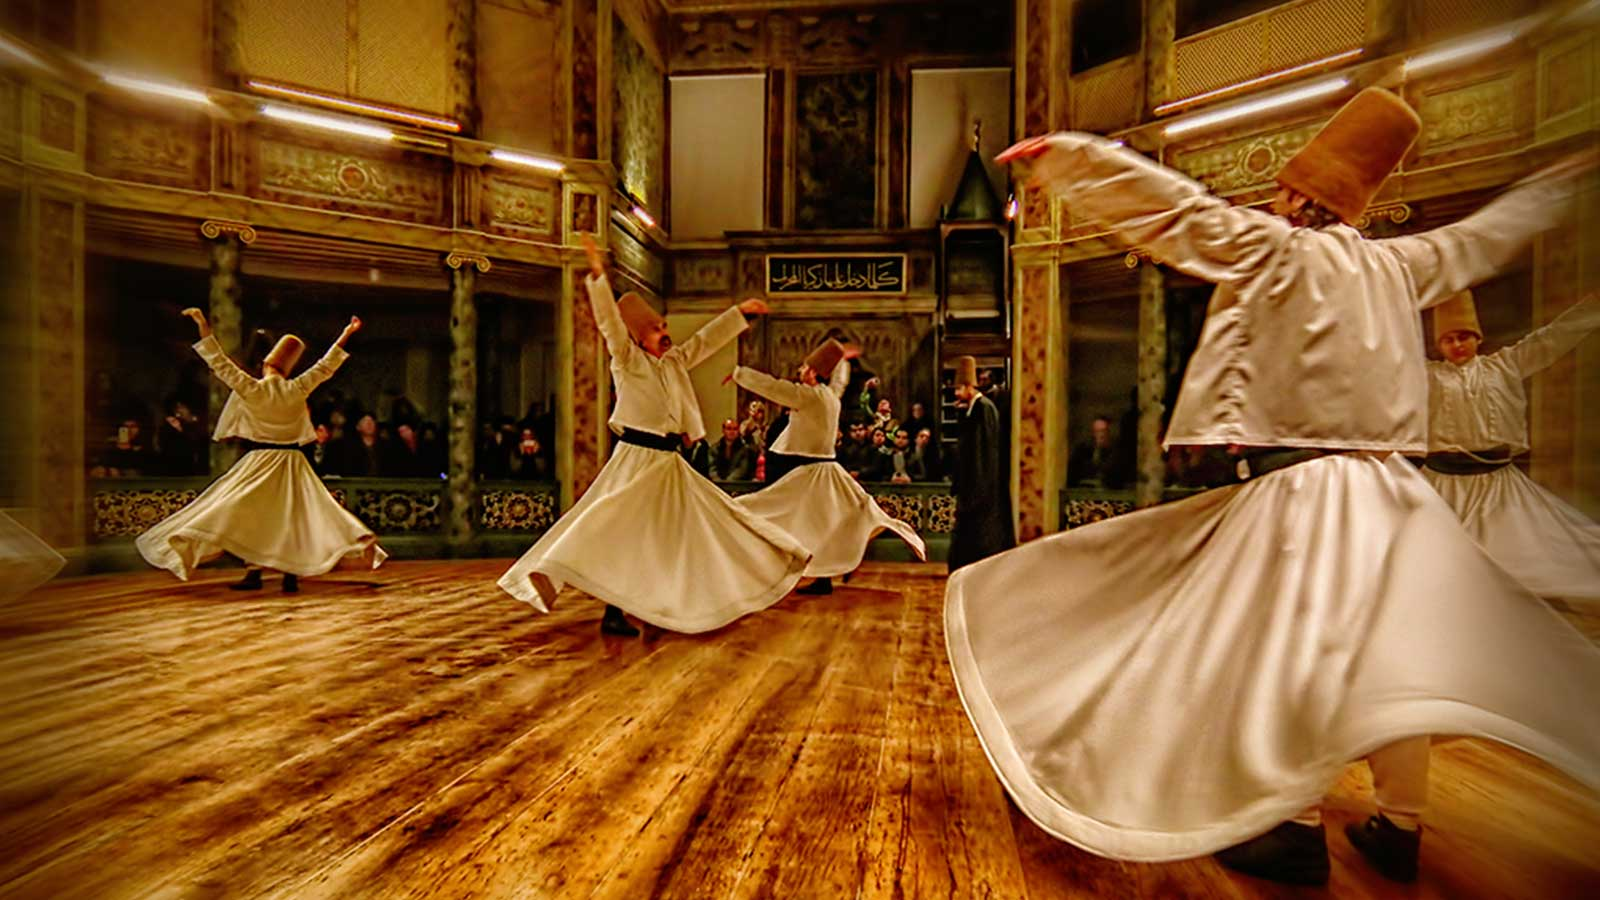 The Whirling Dervishes Show at the Hodja Pasha Culture Center